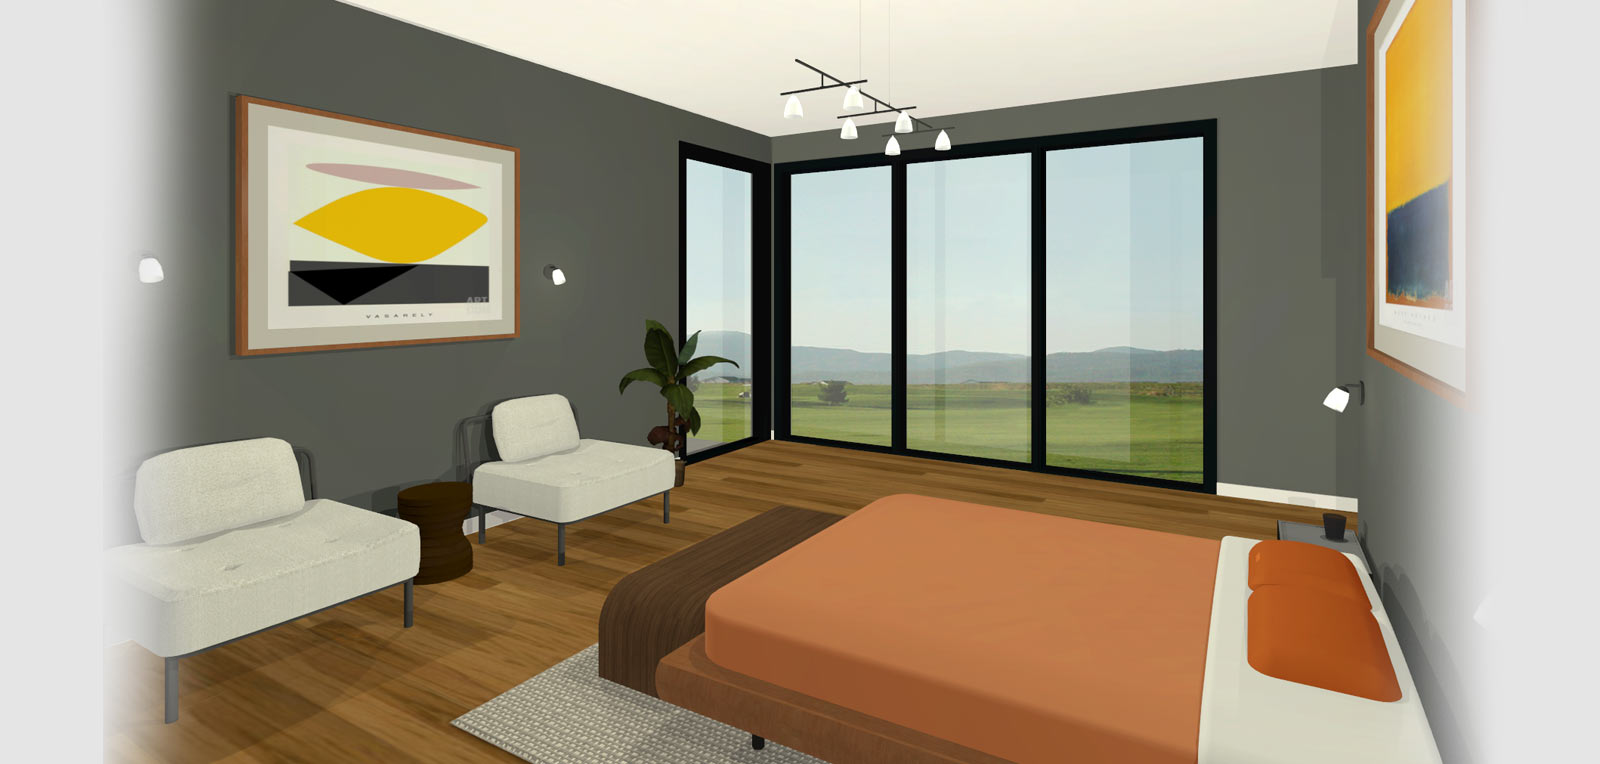 Home designer interior design software for Interior design application